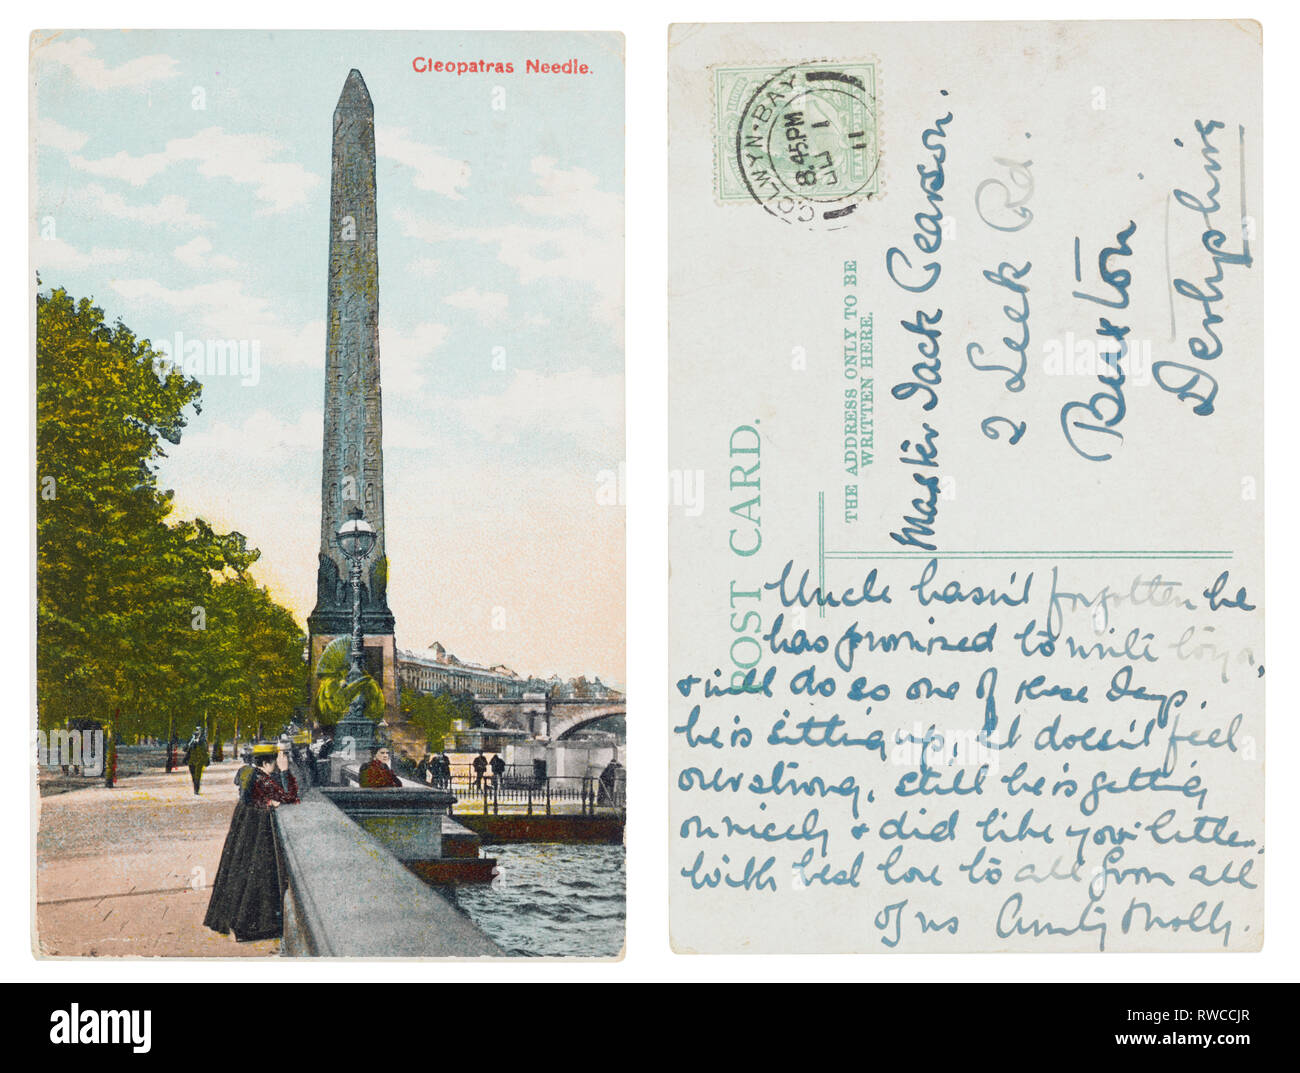 Postcard of Cleopatras Needle posted from Colwyn Bay to Buxton in 1911 - Stock Image